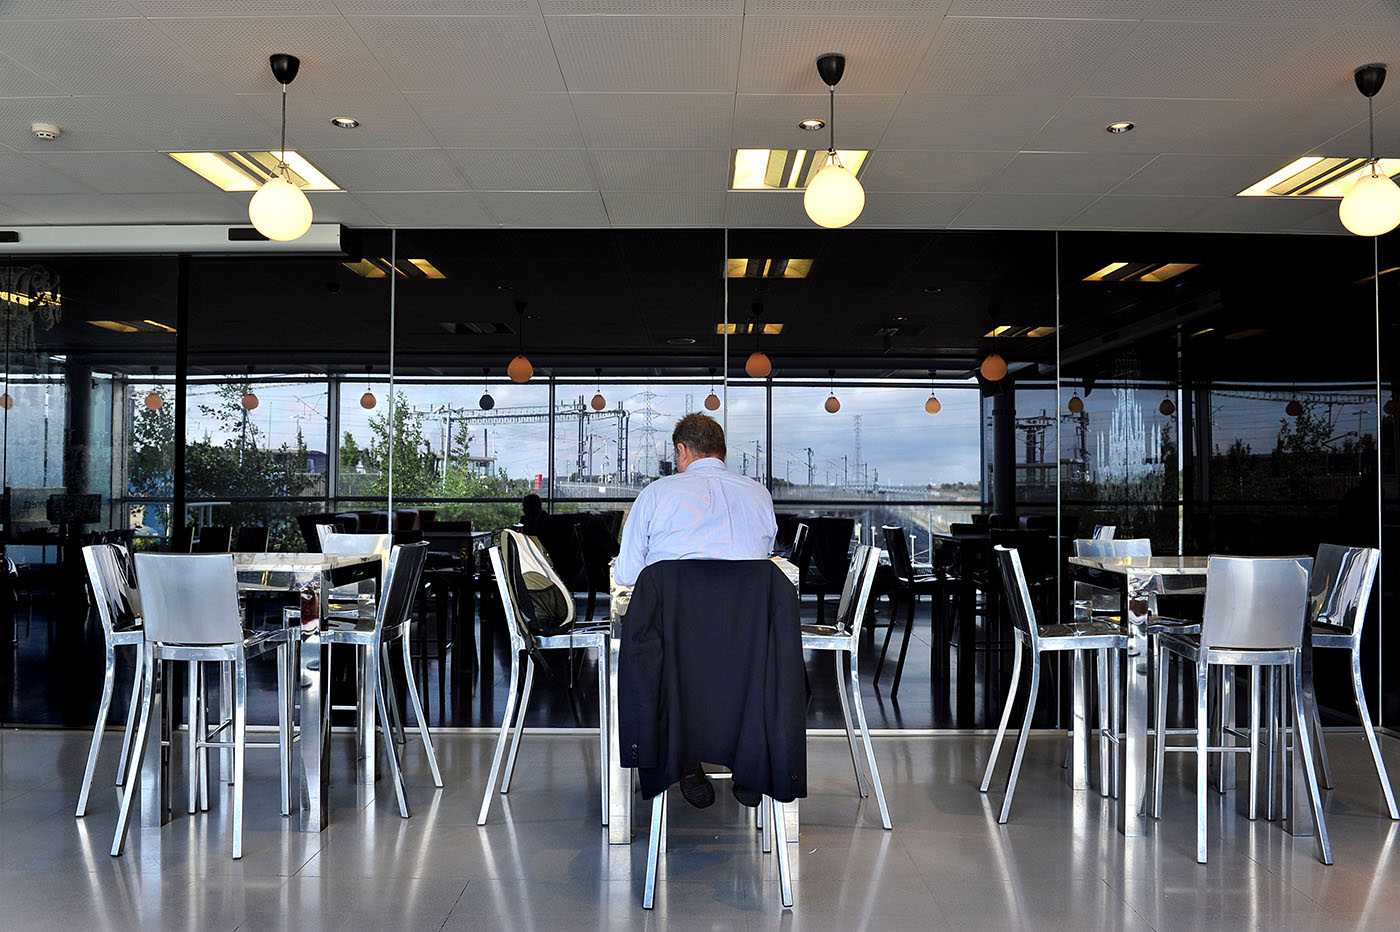 The First Class Lounge in the Eurostar Departure area at Ebbsfleet International train station